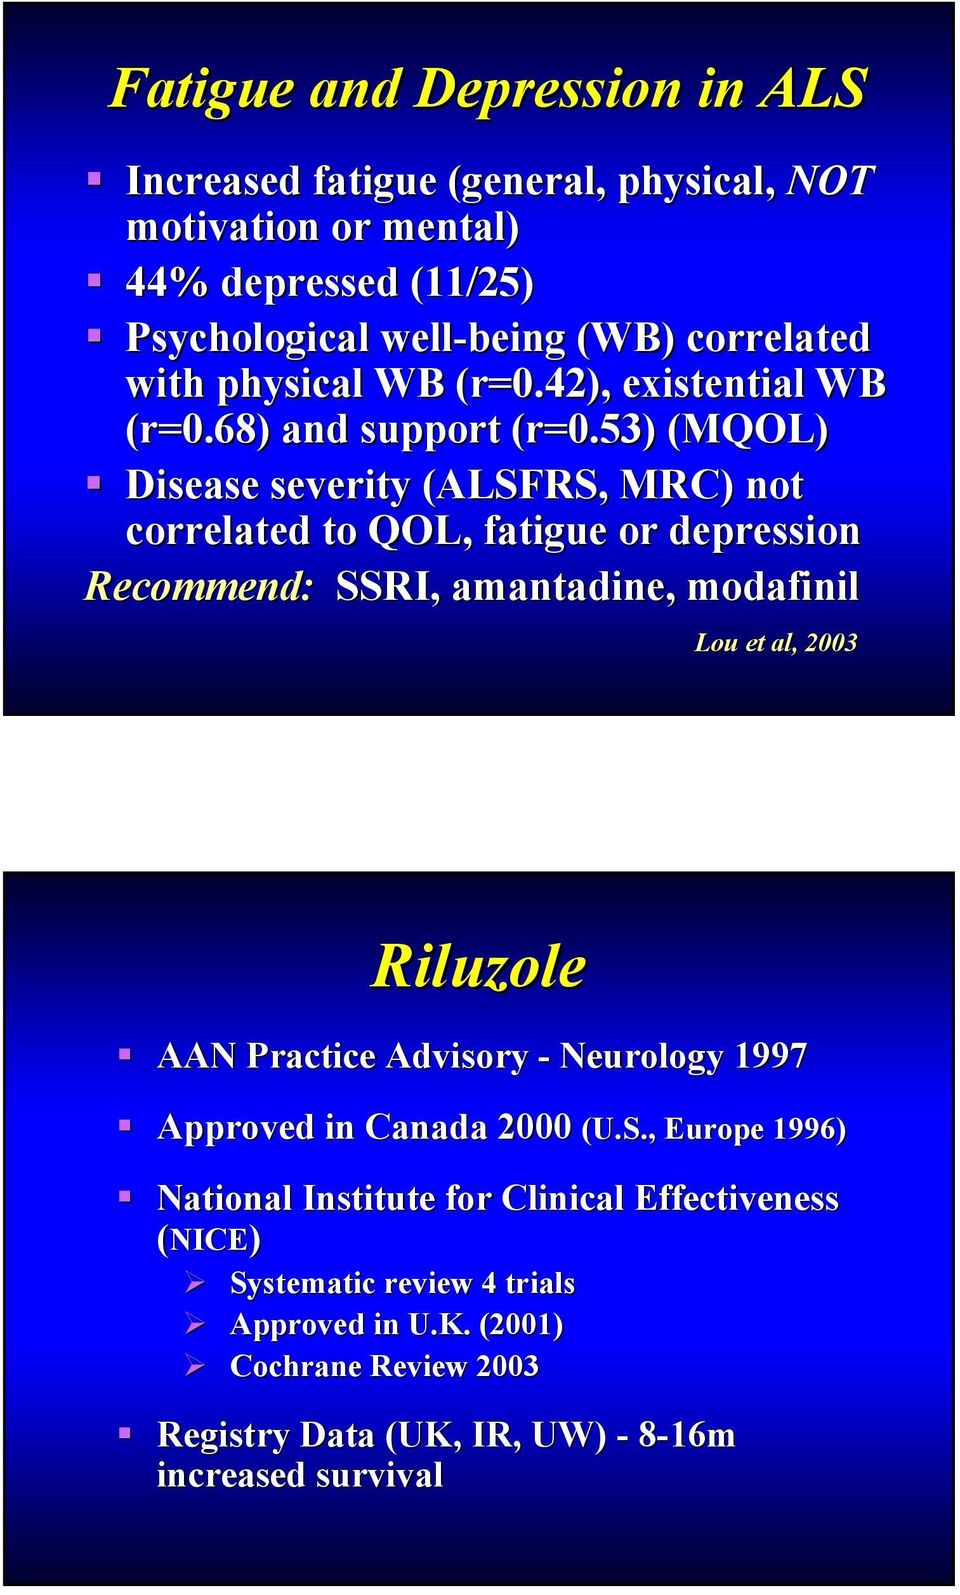 Disease severity (ALSFRS, MRC) not correlated to QOL, fatigue or depression Recommend: SSRI, amantadine, modafinil Lou et al, 2003 Riluzole!